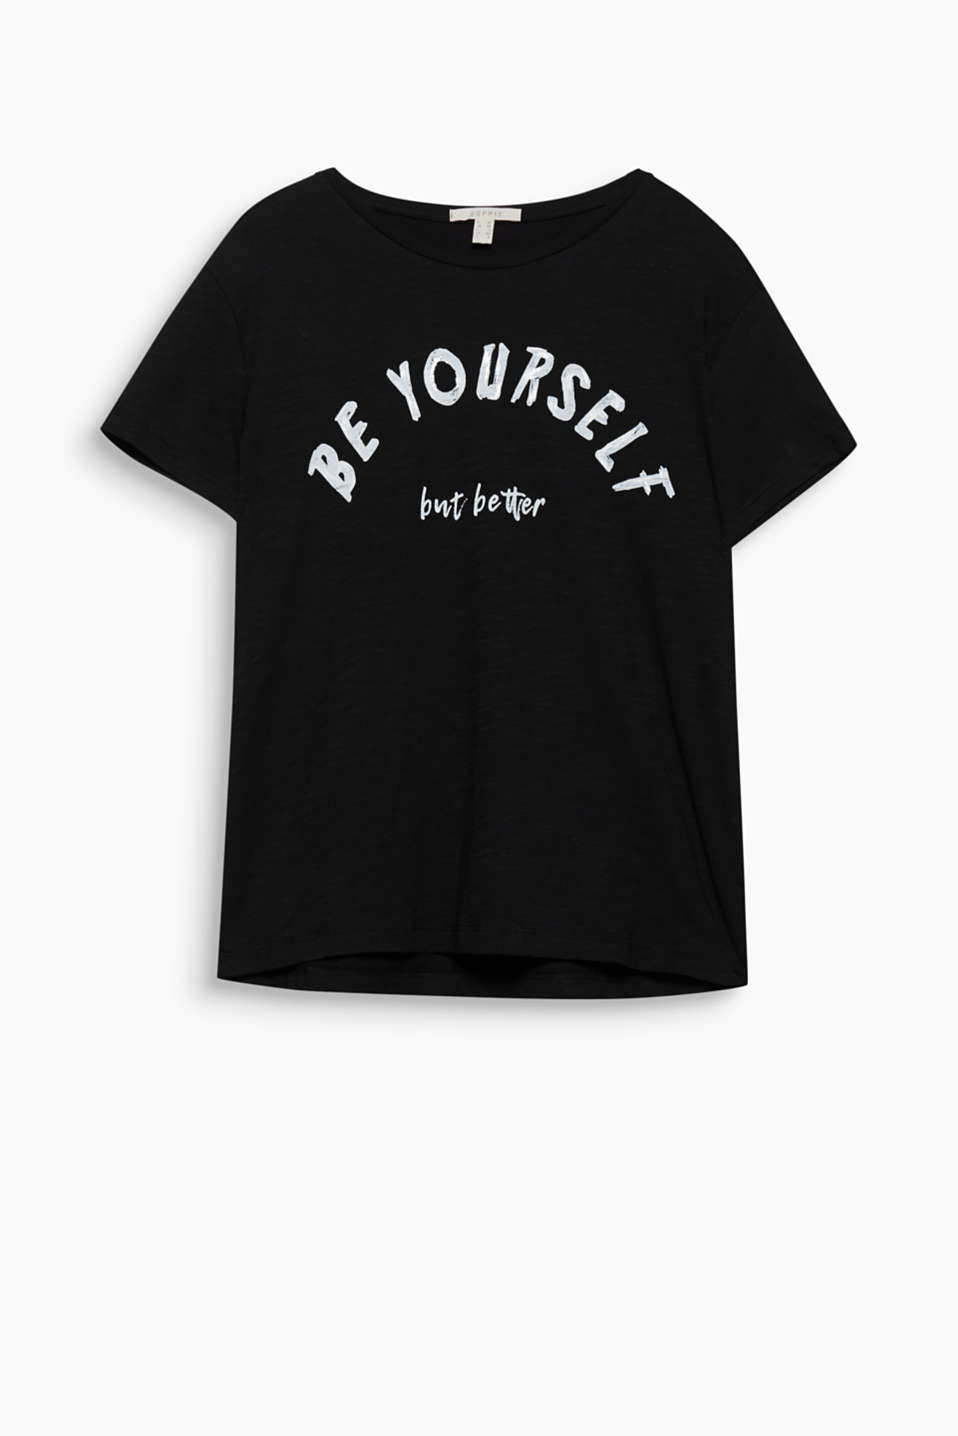 Be yourself, but better: zacht katoenen shirt met een coole statement print met de look van penseelstrepen